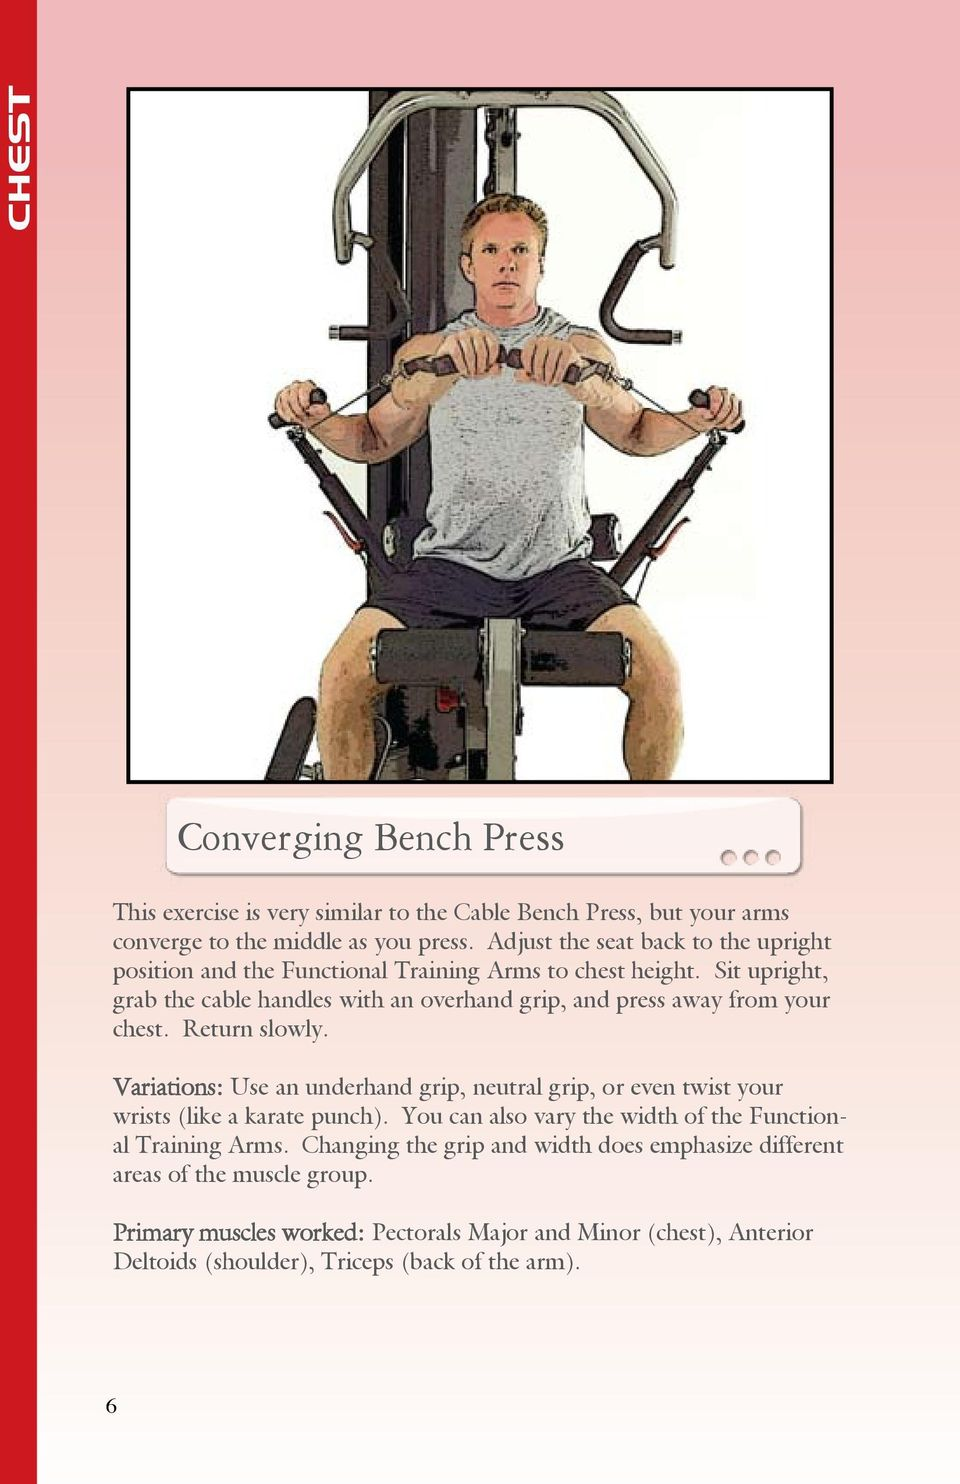 Sit upright, grab the cable handles with an overhand grip, and press away from your chest. Return slowly.